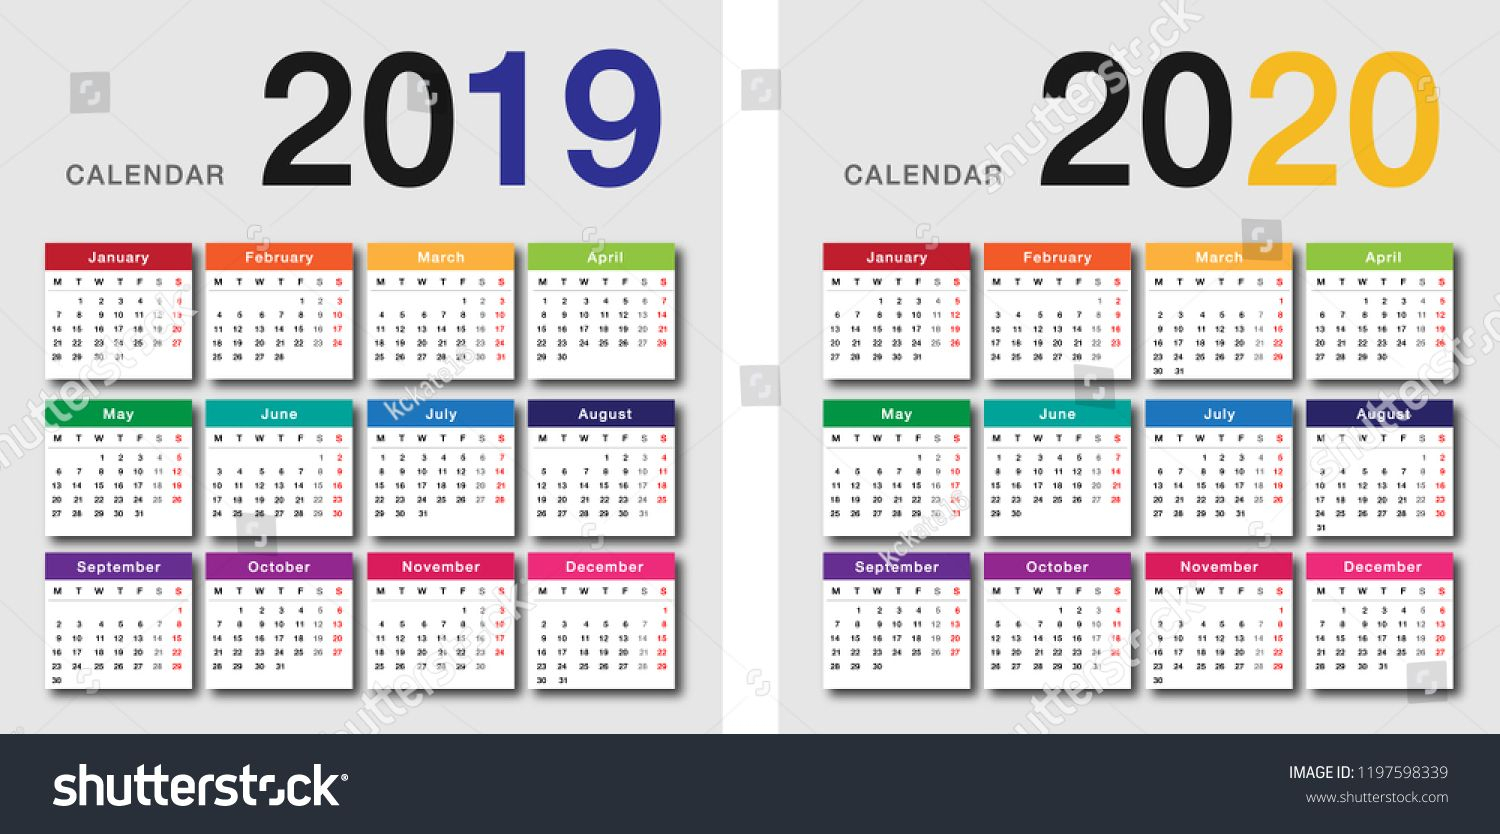 Colorful Year 2019 And Year 2020 Calendar Horizontal Vector Design for I Heart Naptime Calendar 2020